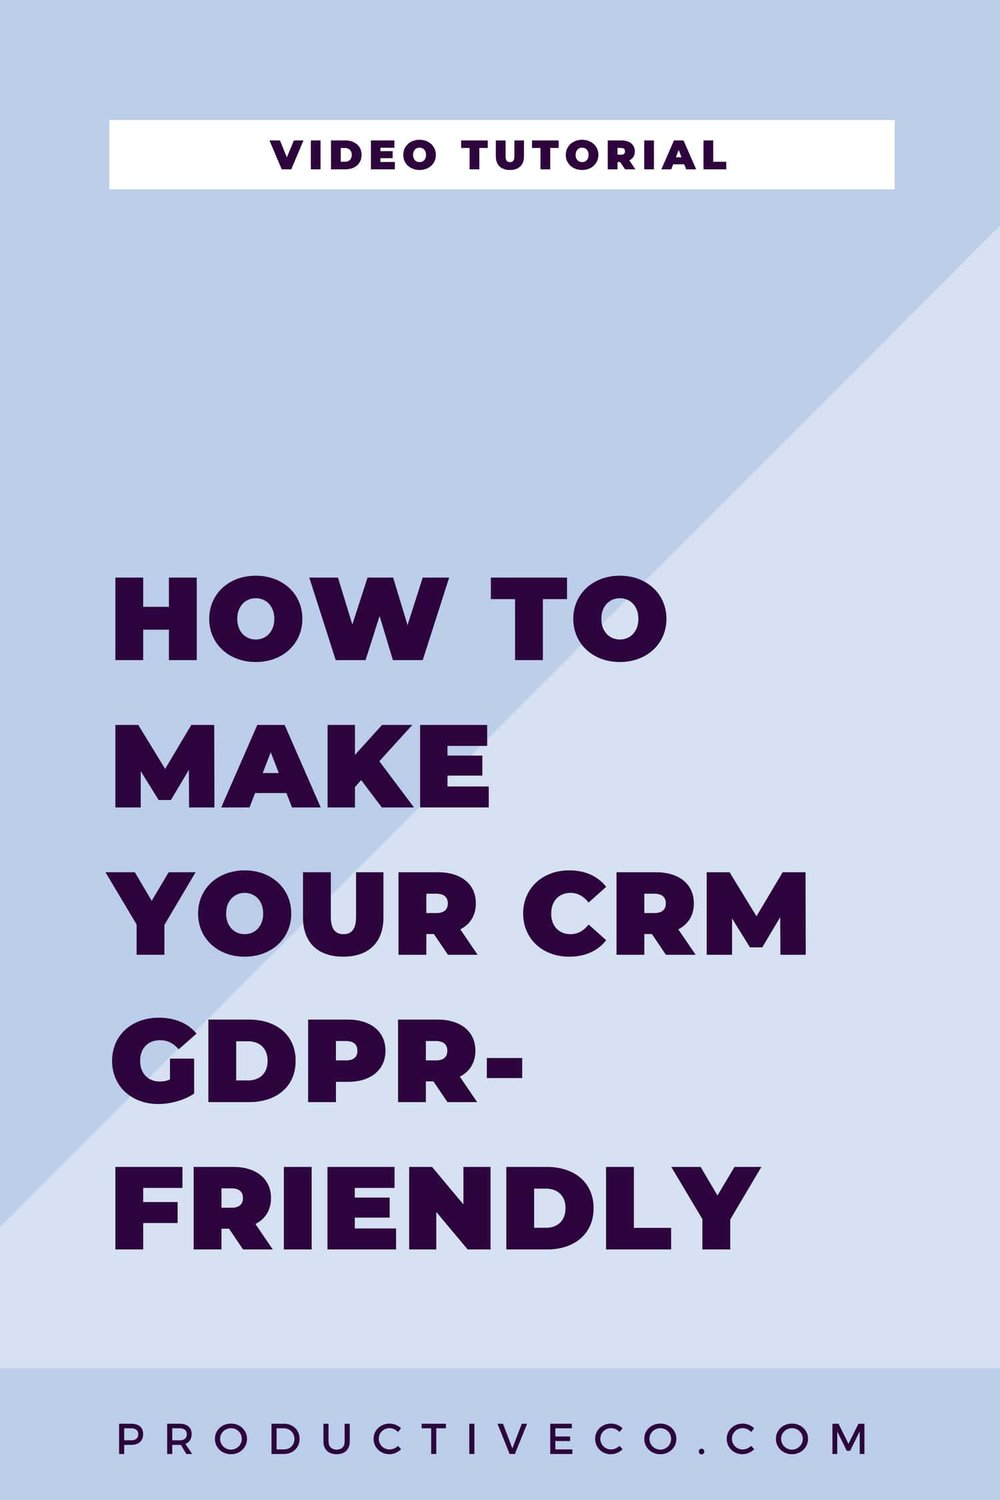 How to make Dubsado GDPR-friendly is covered in this post. Find out if you need to comply and how you can do so in Dubsado. This post covers all other CRMs, too.